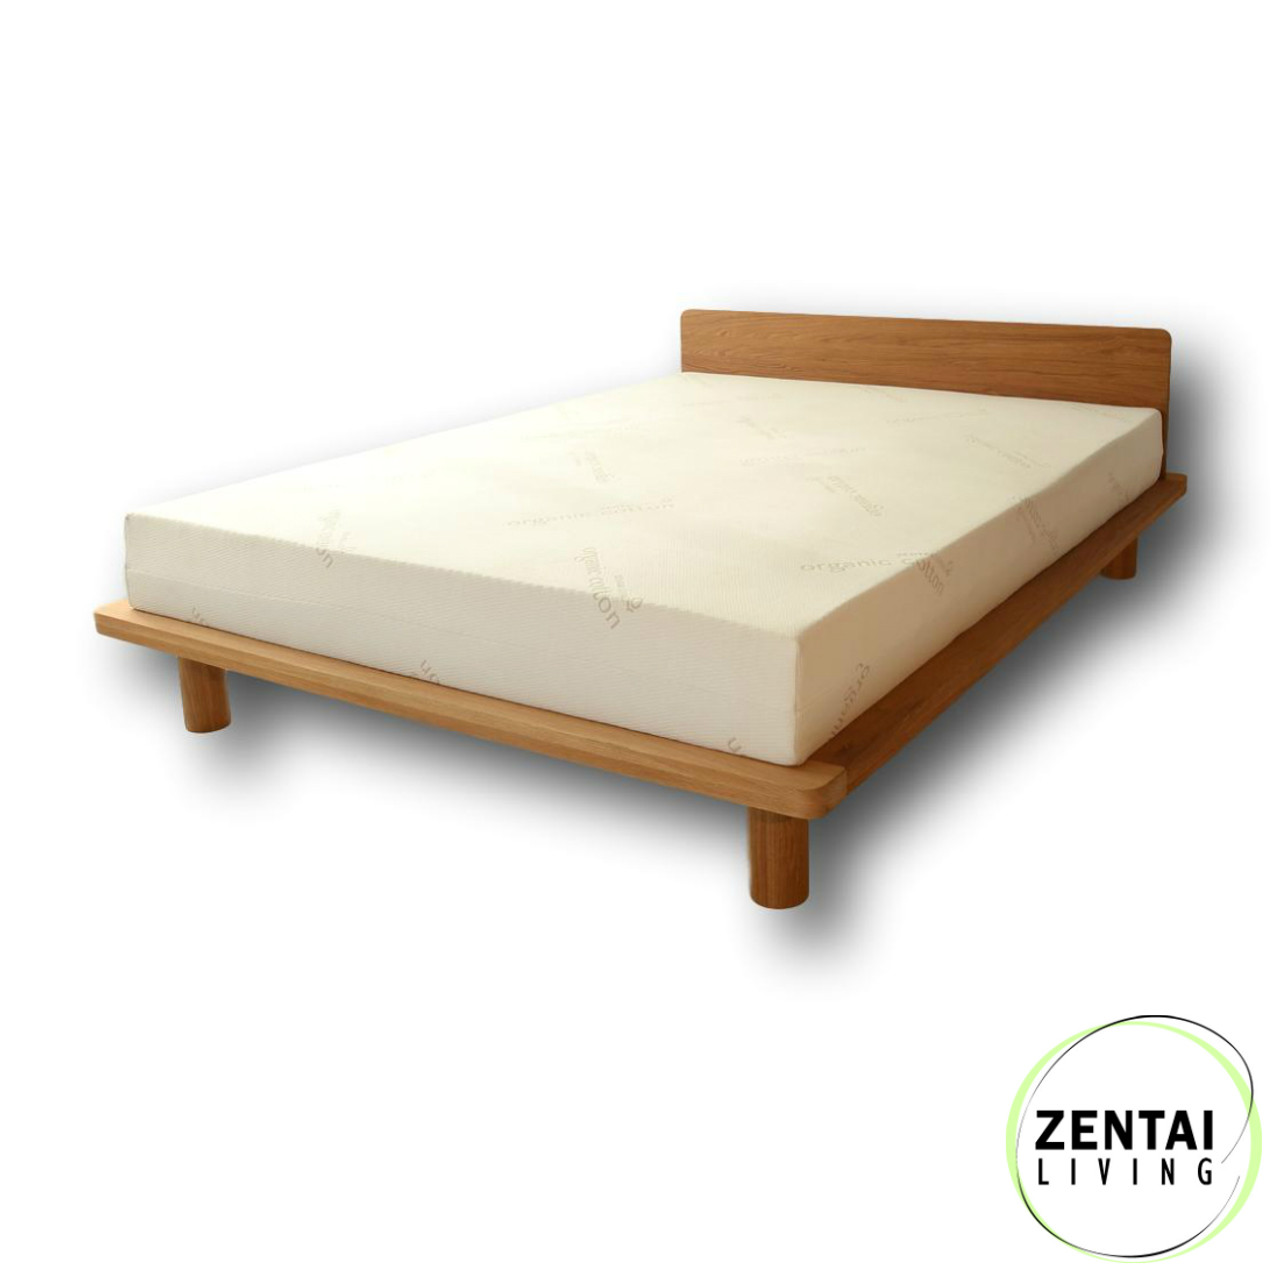 Zen Bed Frame In Solid American Oak Zentai Living